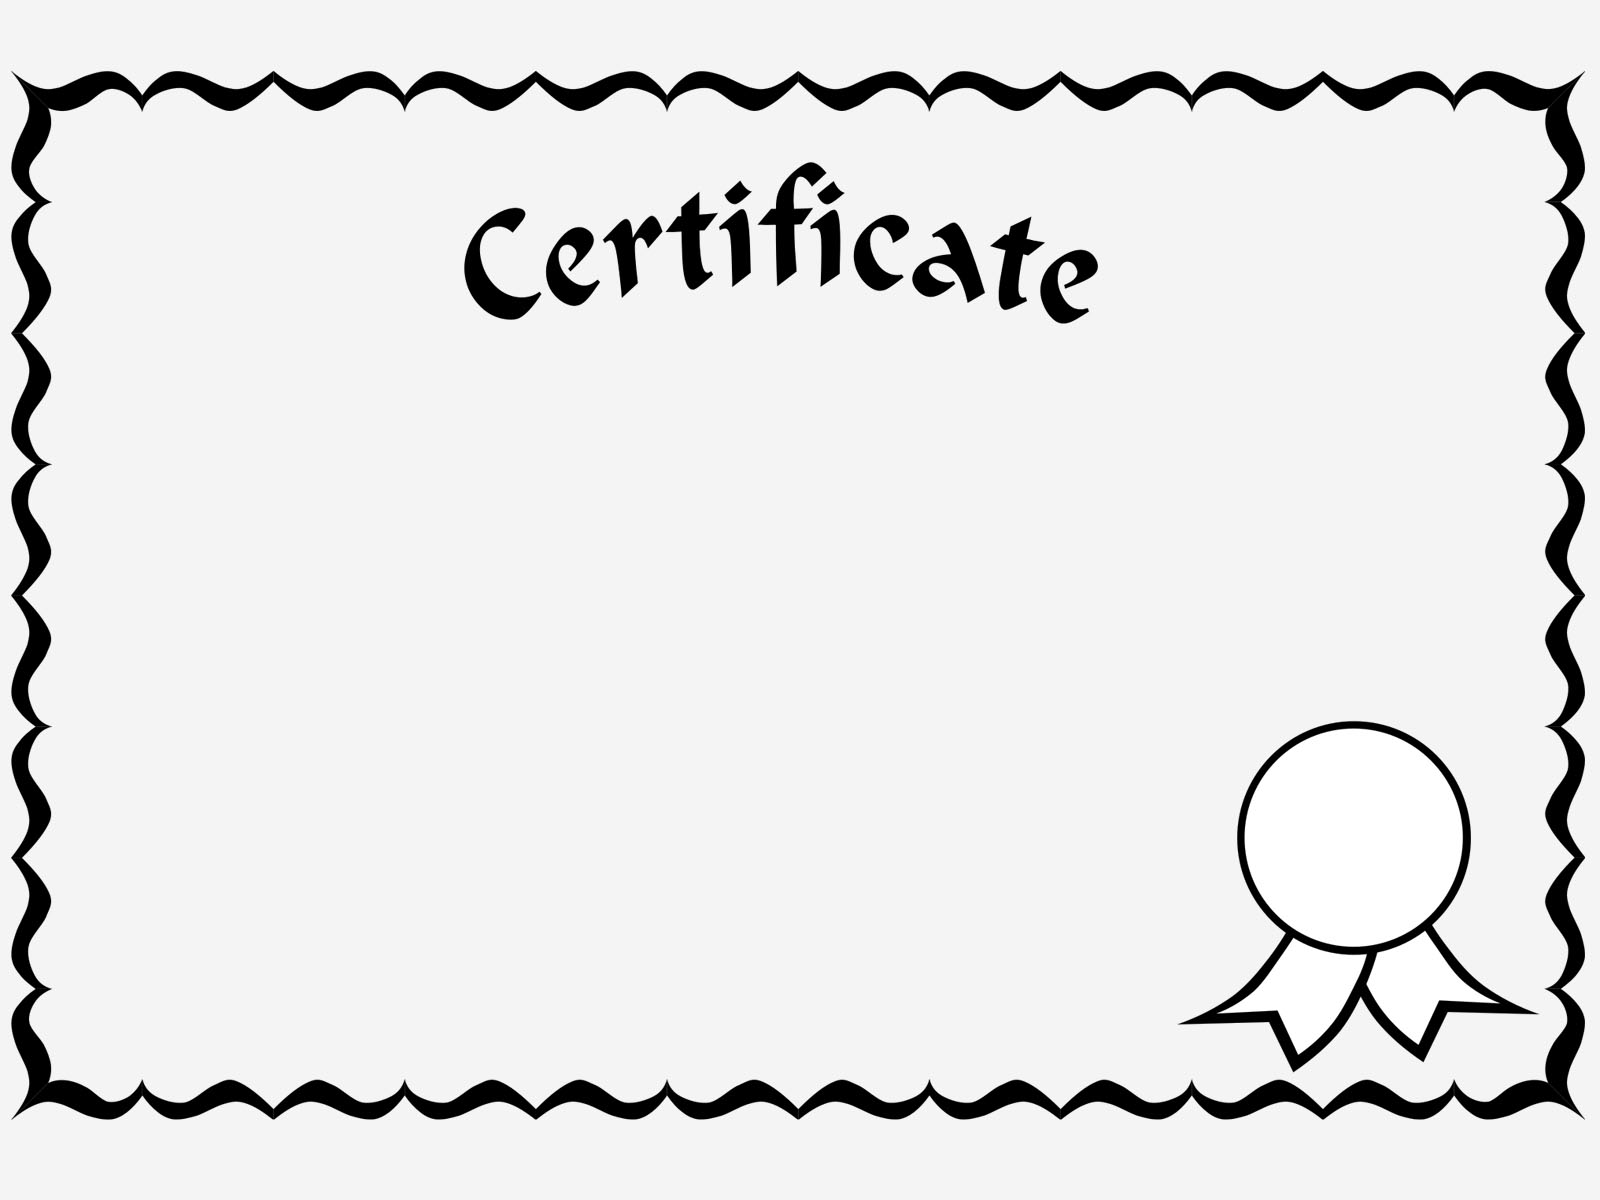 PPT Backgrounds Templates: Diploma Certificate PPT Template Throughout Powerpoint Certificate Templates Free Download